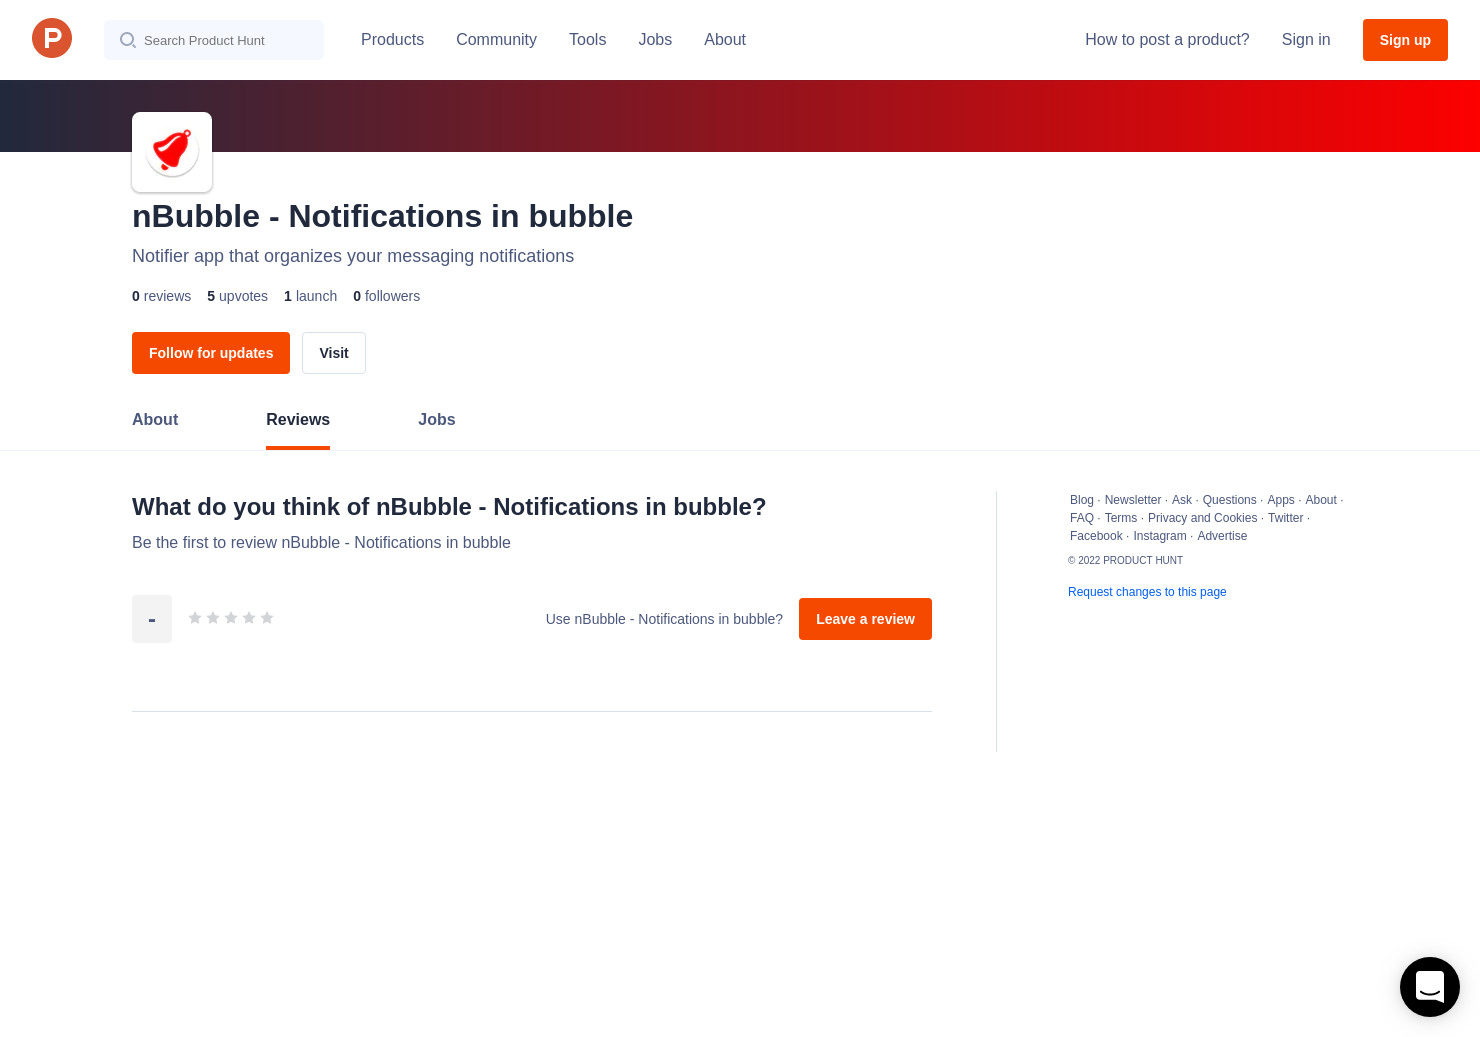 nBubble - Notifications in bubble Reviews - Pros, Cons and